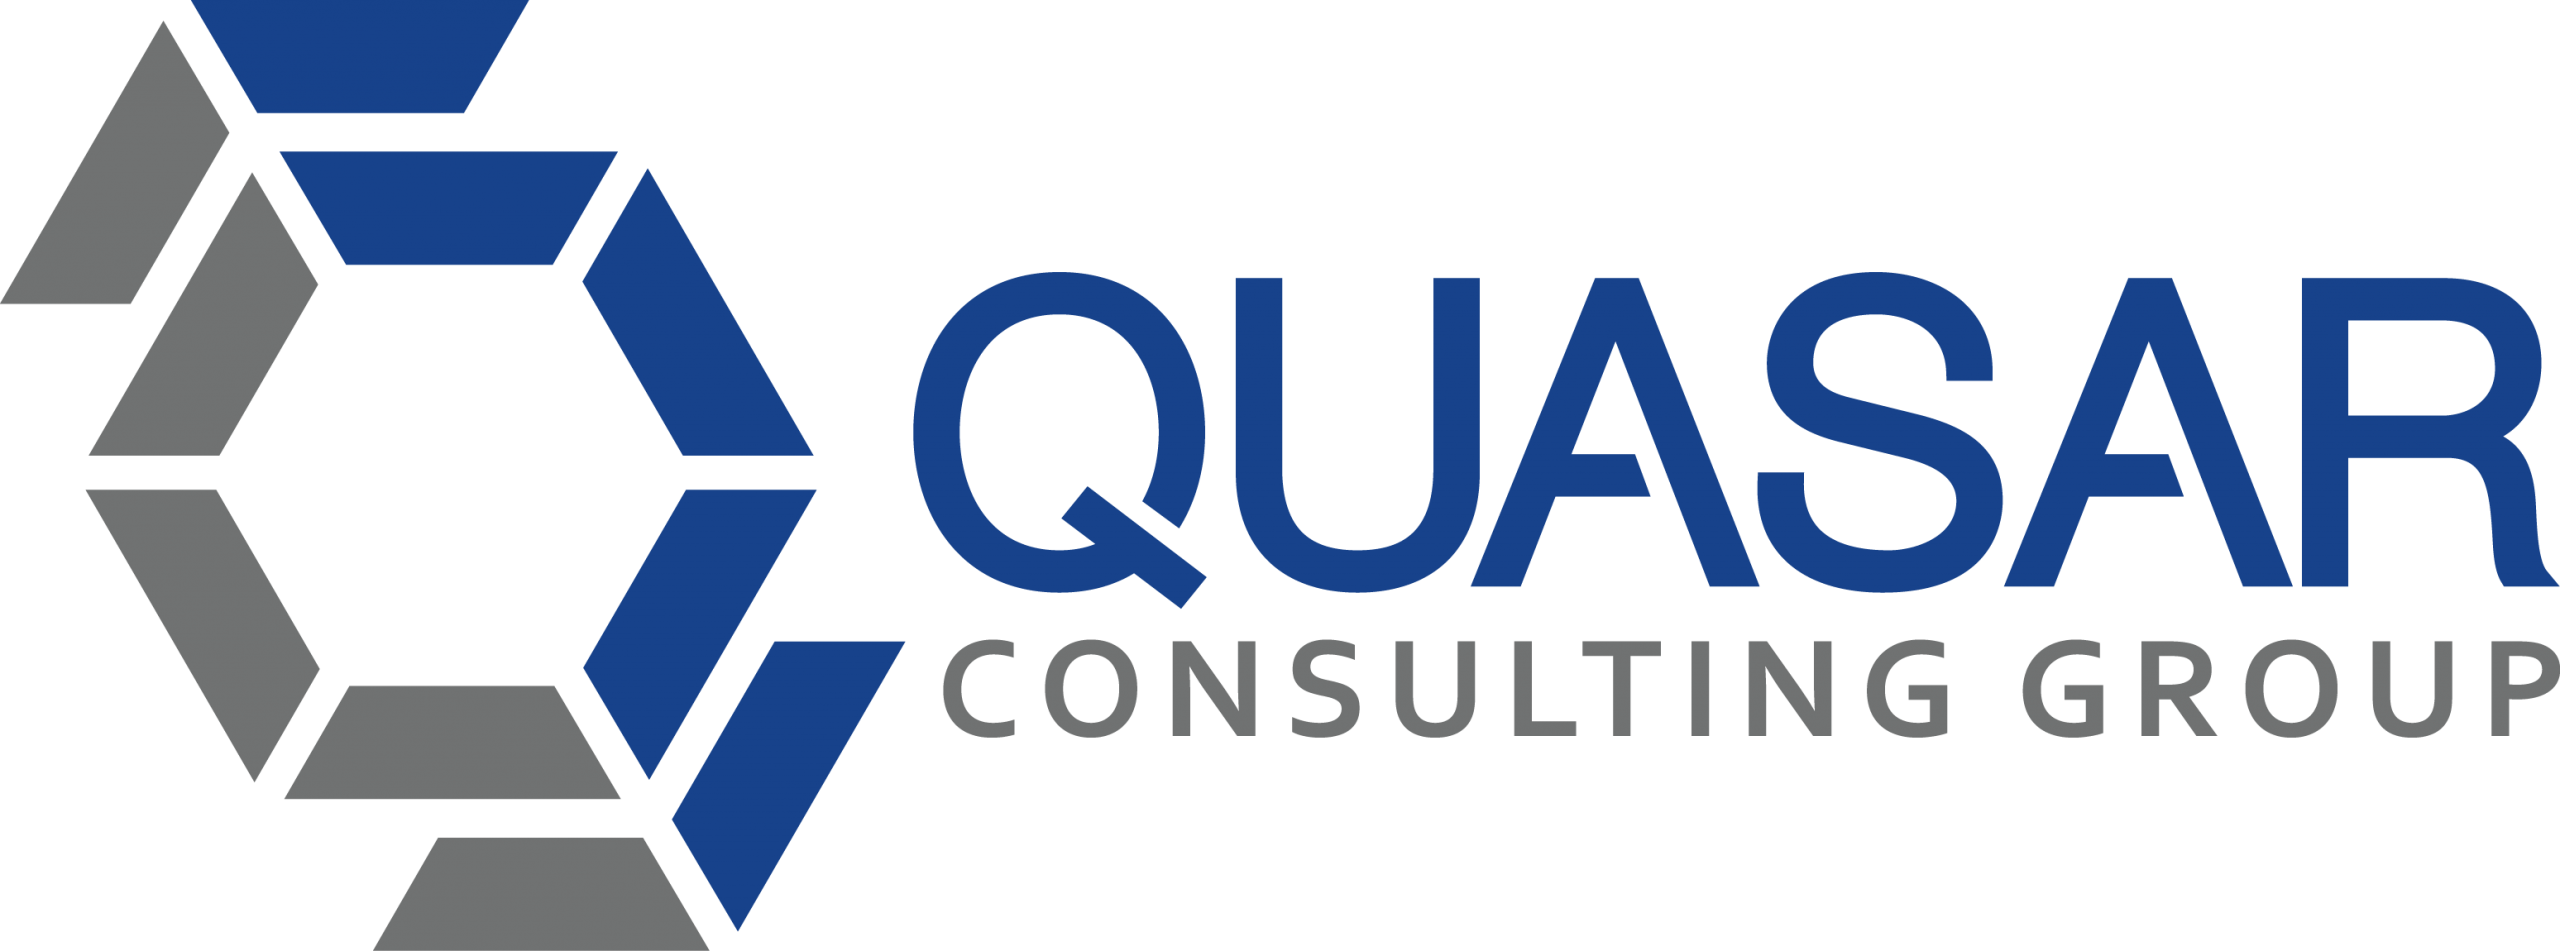 Quasar Consulting Group